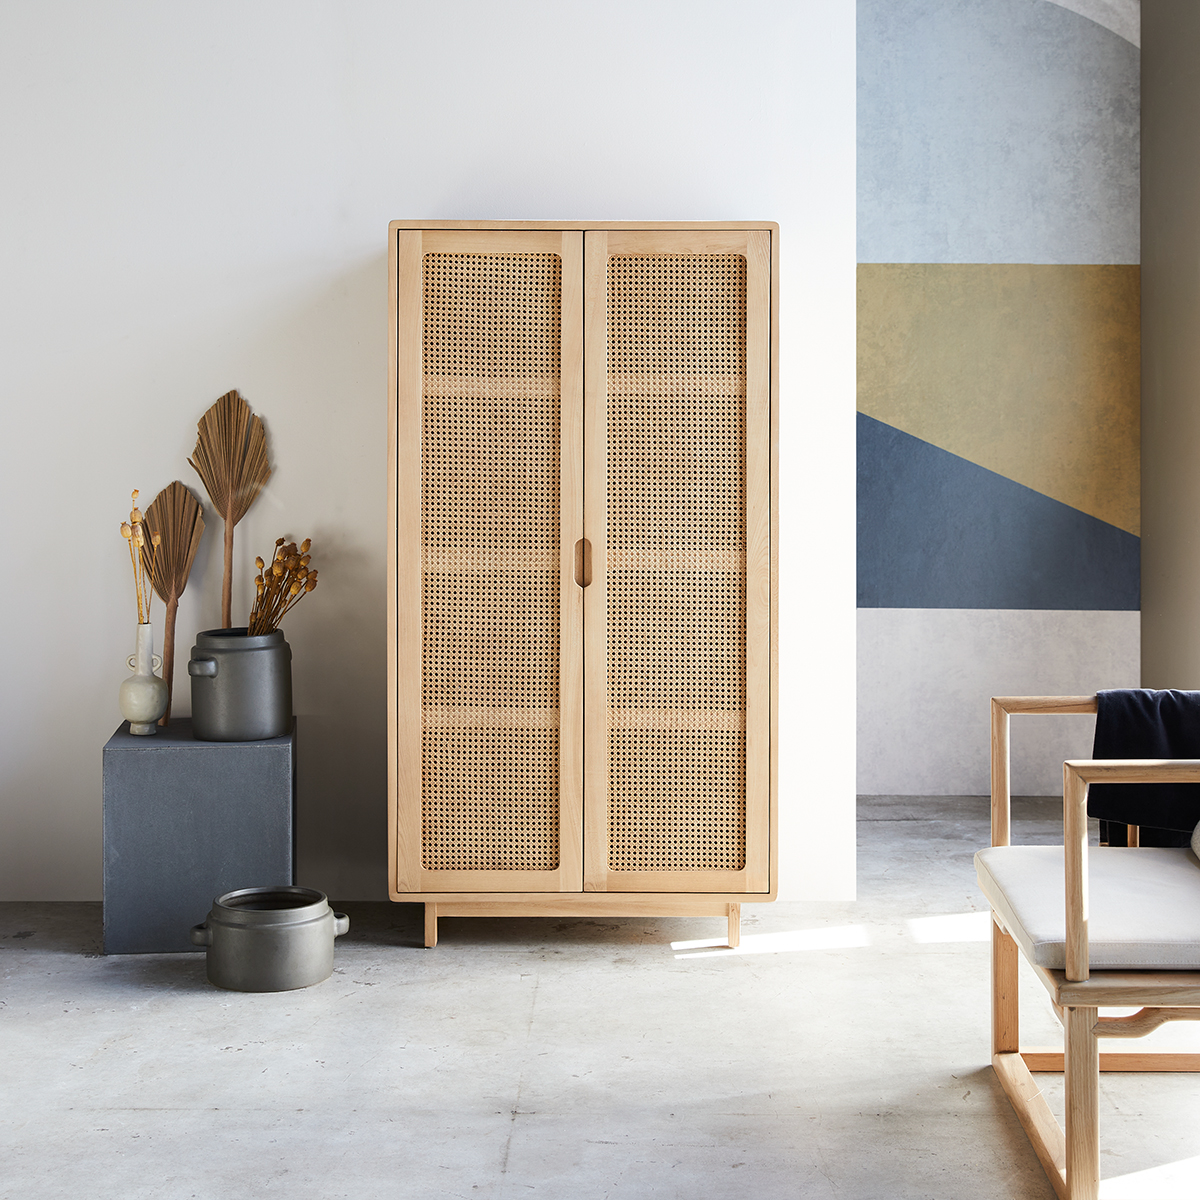 Luis solid elm and canework storage cupboard